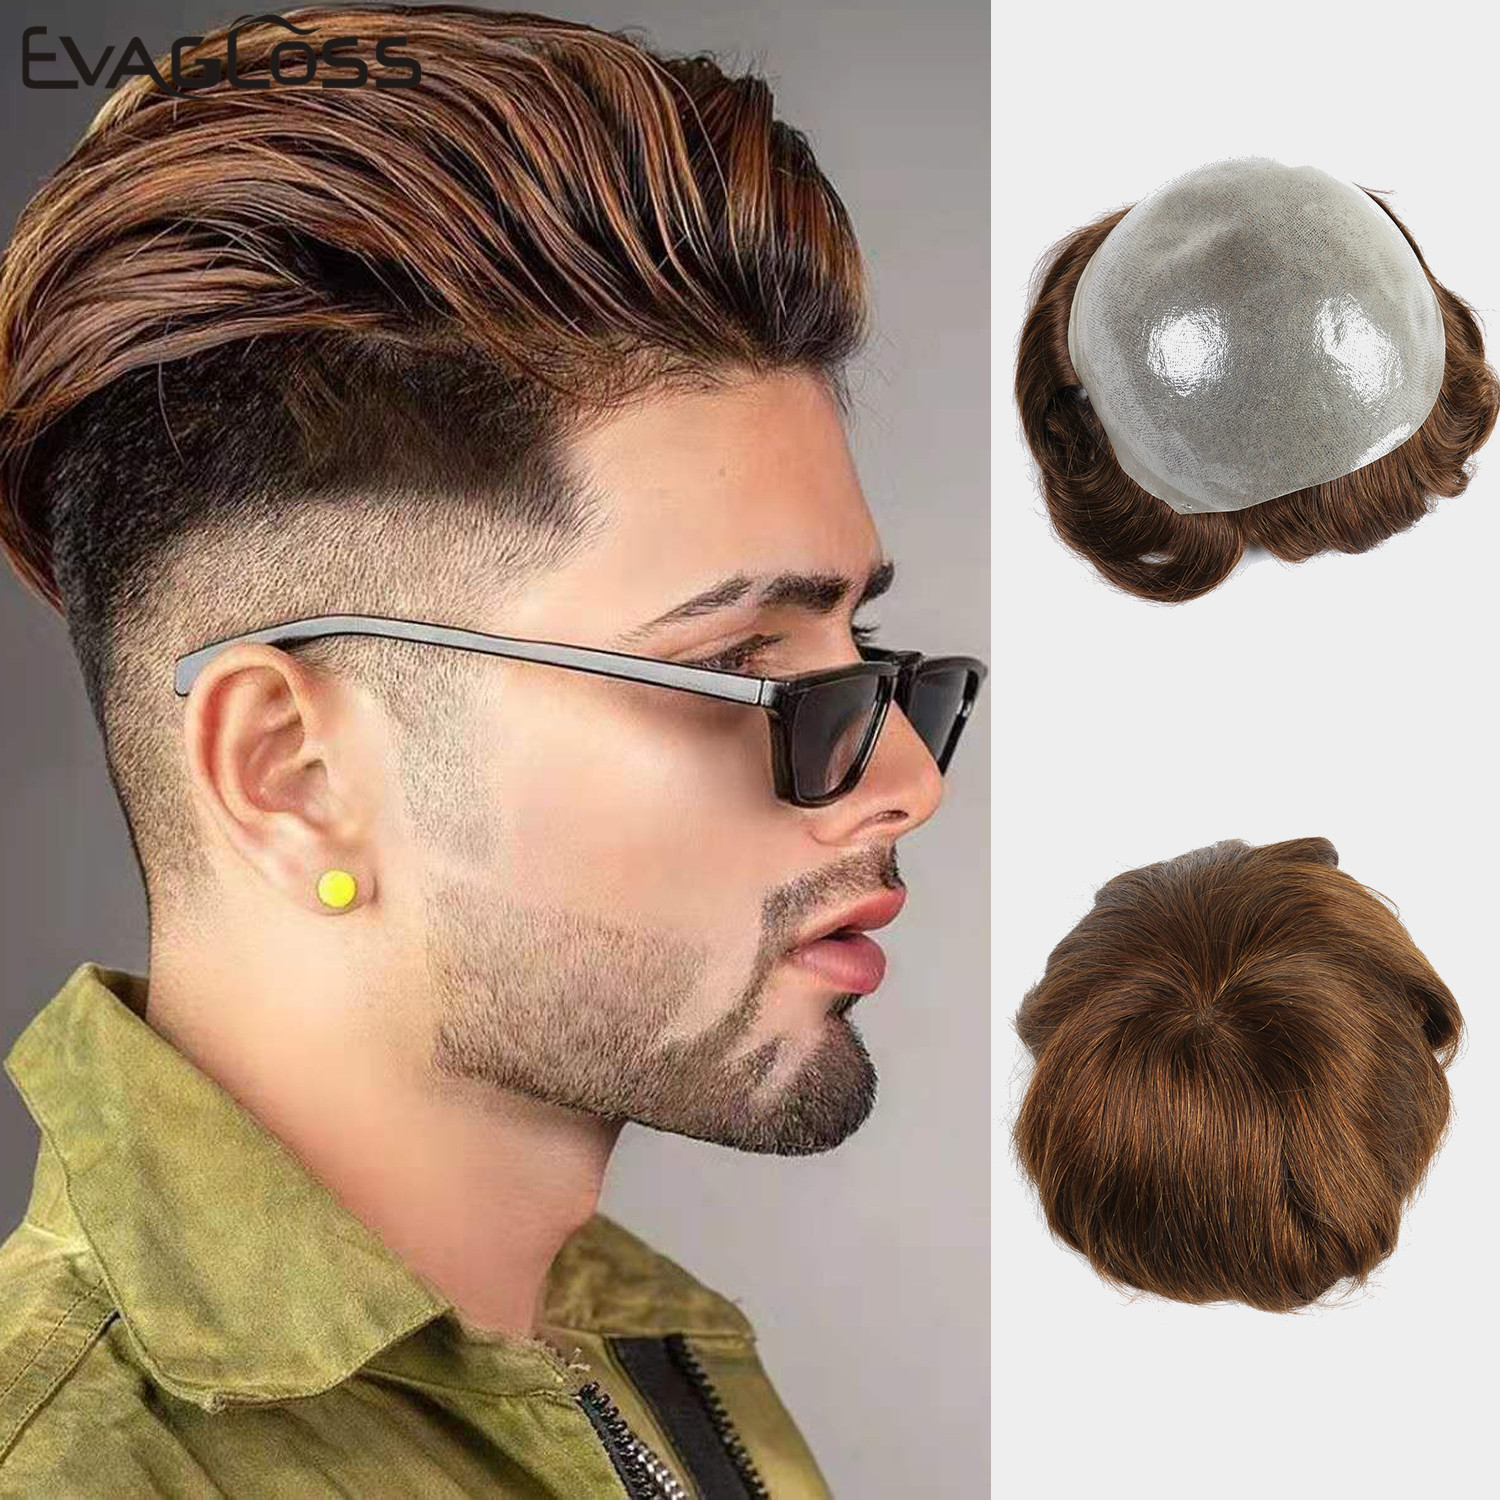 EVAGLOSS 0.12-0.14mm Durable Skin India Human Hair Men Wig V Loop Replacement Hair Pieces System Men's Toupee